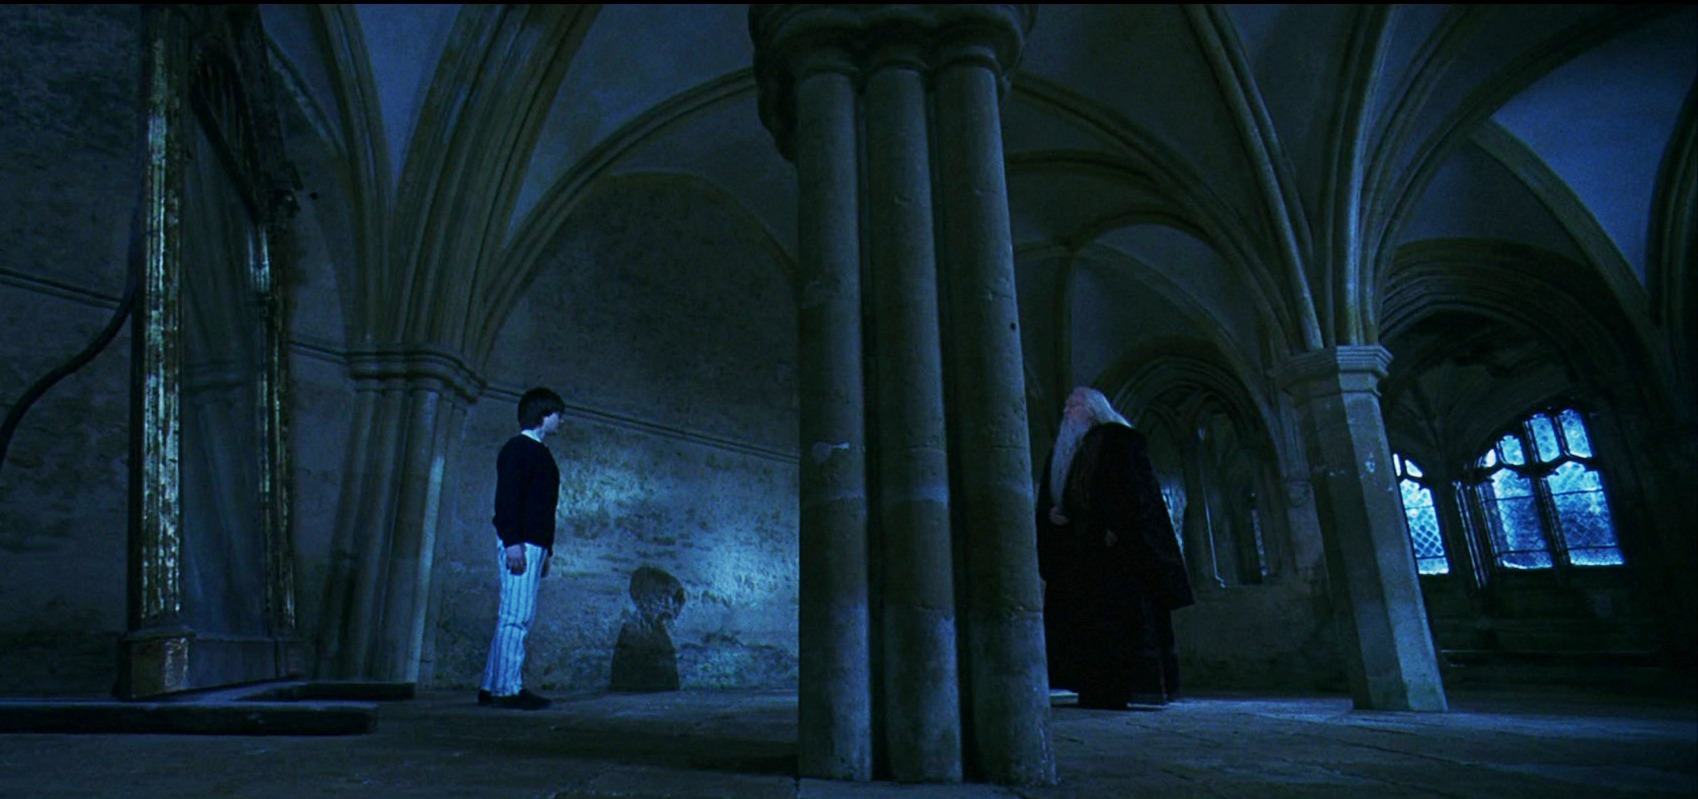 Harry-potter1-disneyscreencaps.com-11919